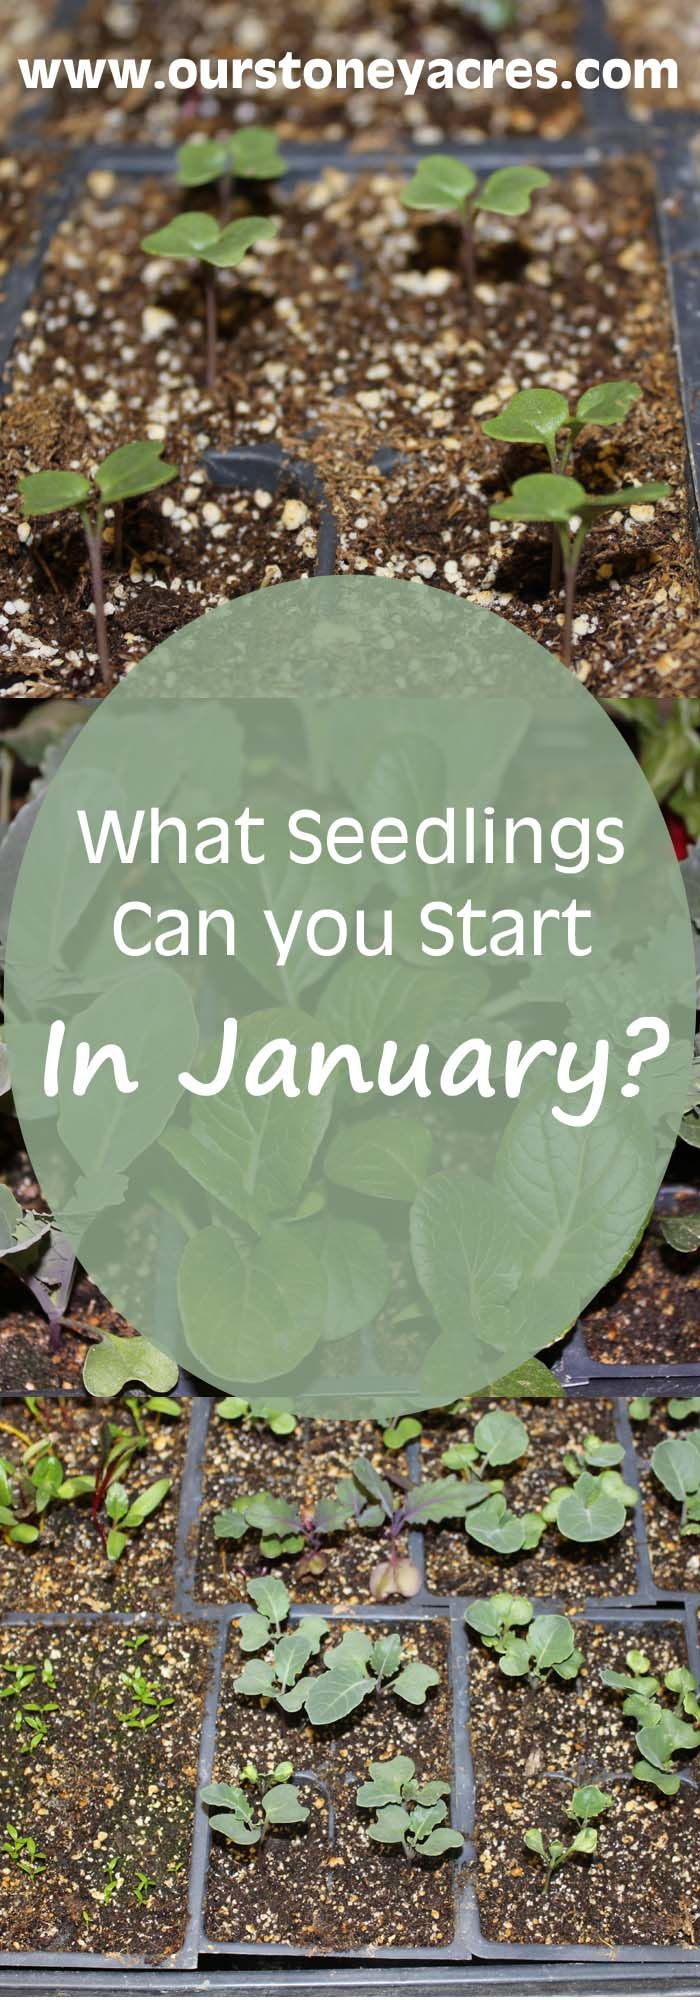 What Seedlings Can you Start in January